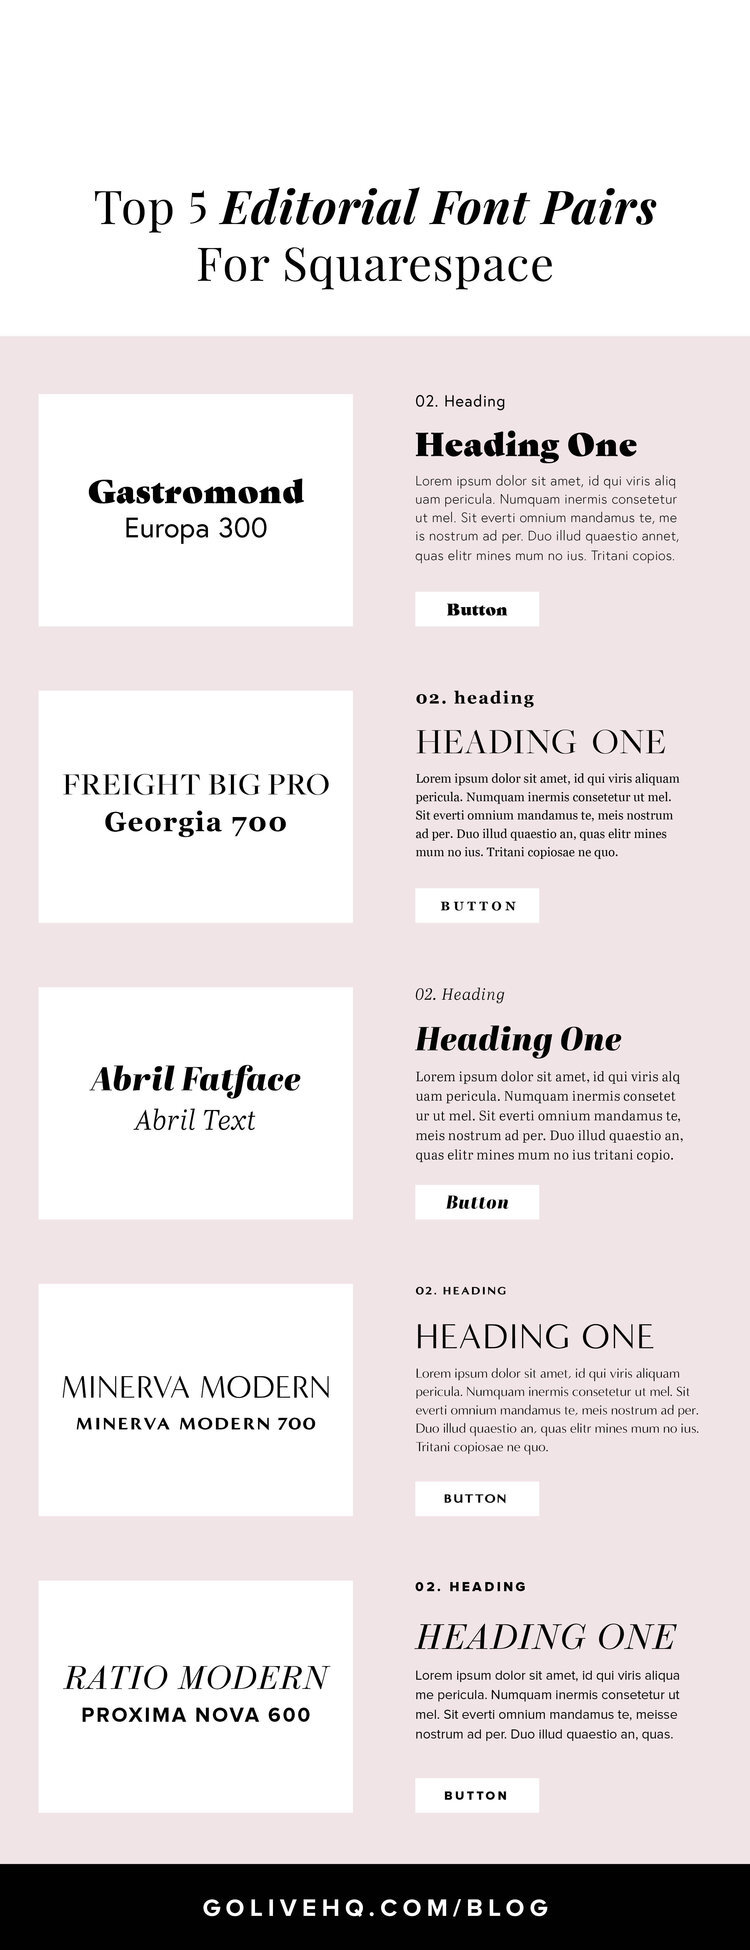 Top+5+Editorial+Fonts+For+Squarespace+_+By+Go+Live+HQ.jpg